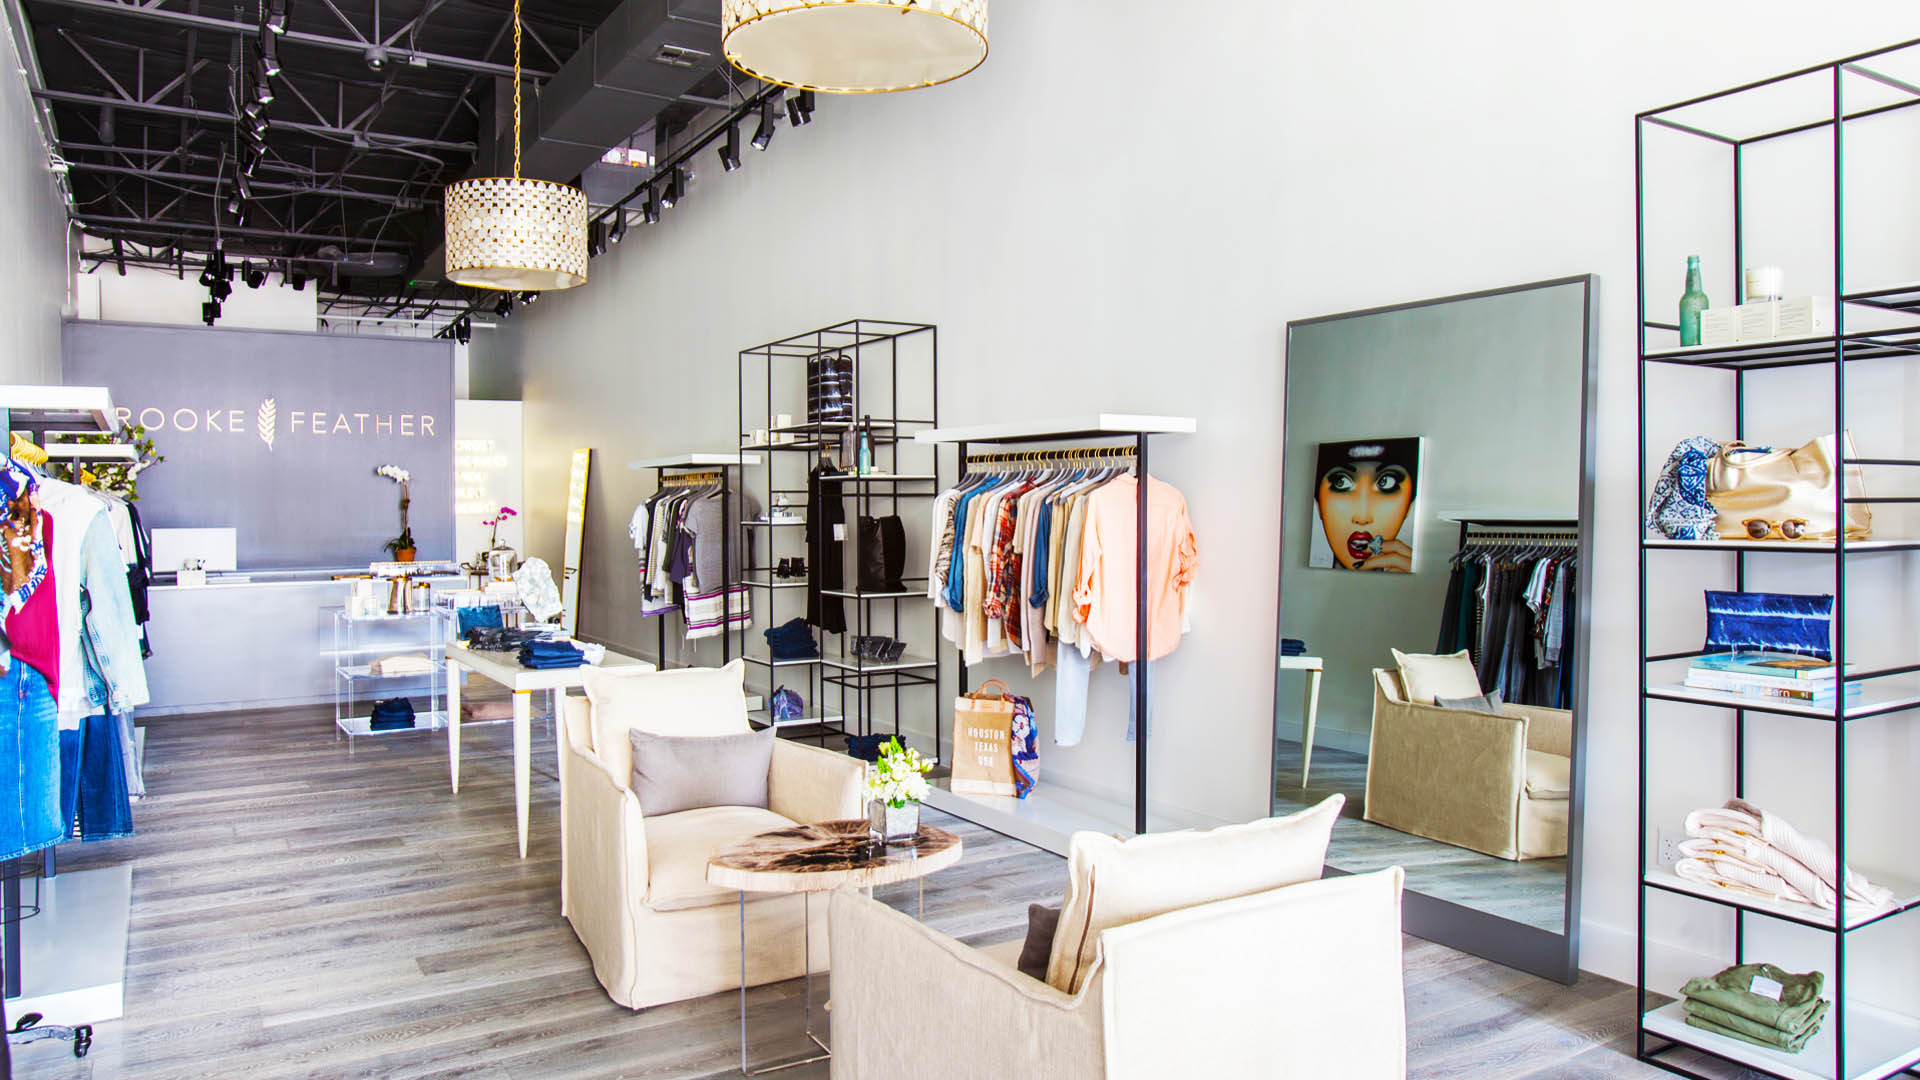 Commercial Retail Interior Design High End Women's Apparel Brooke Feather Houston